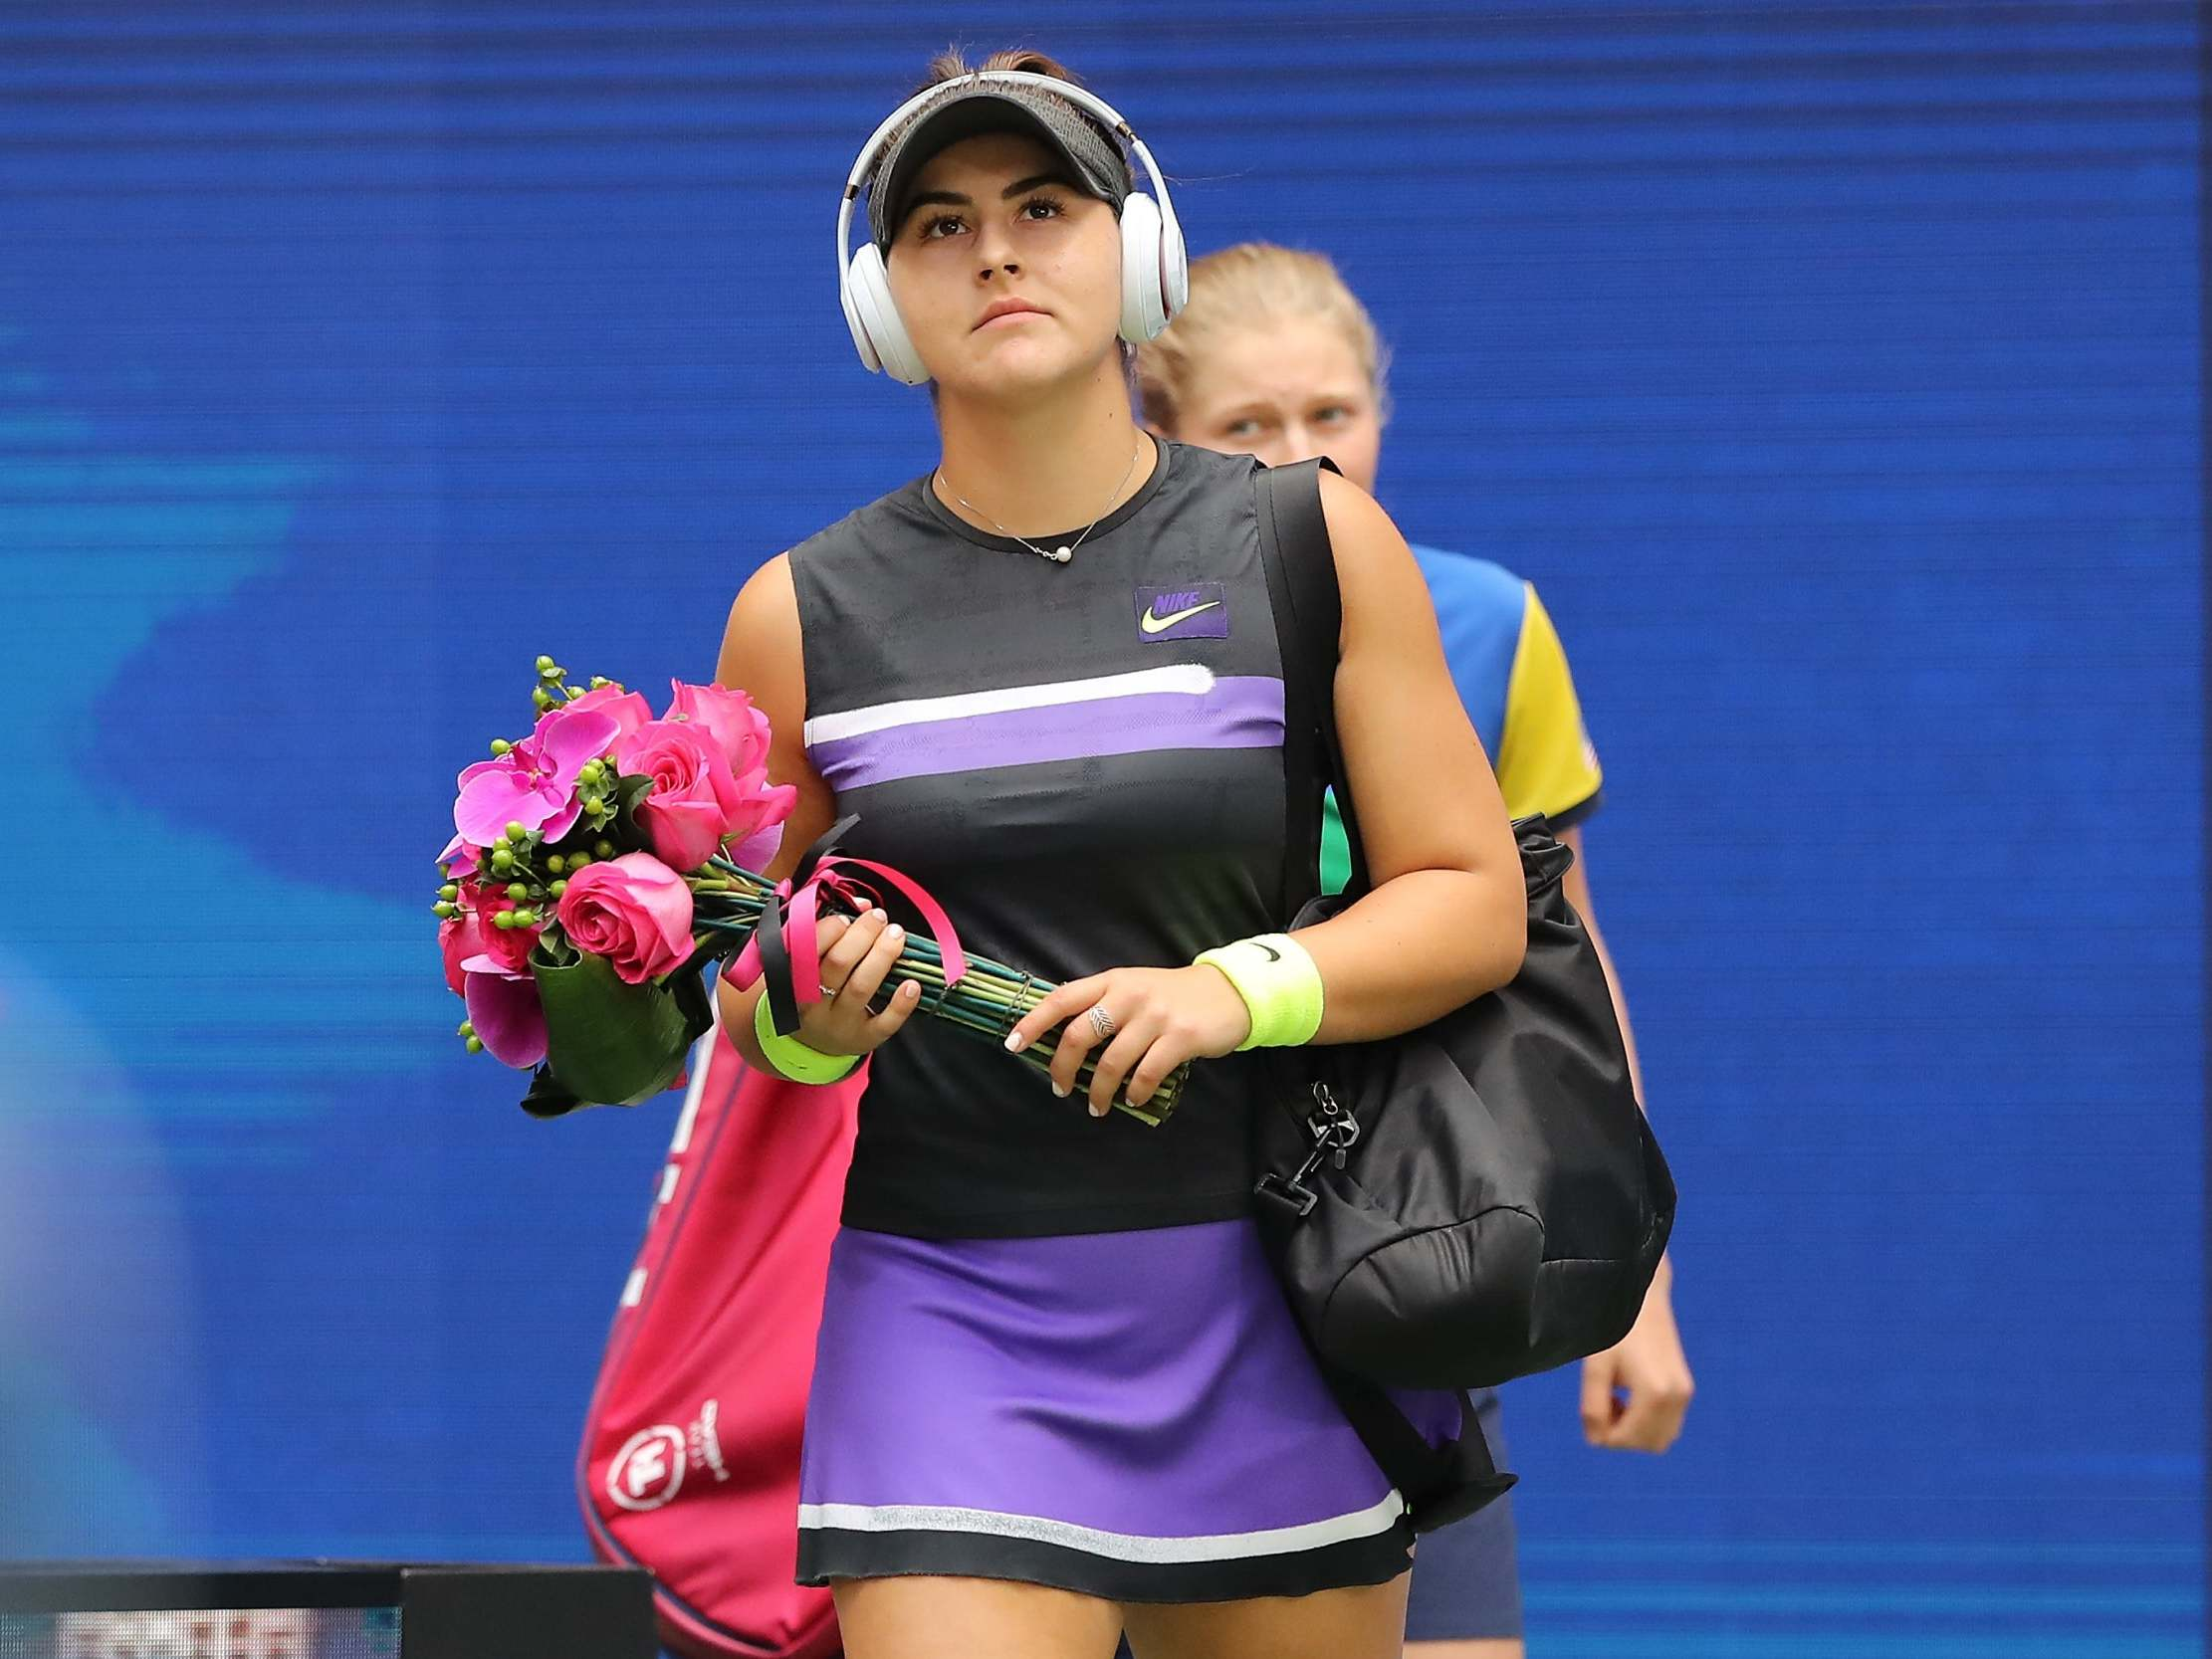 US Open 2019: Bianca Andreescu listened to hip-hop before beating Serena Williams to win first grand slam